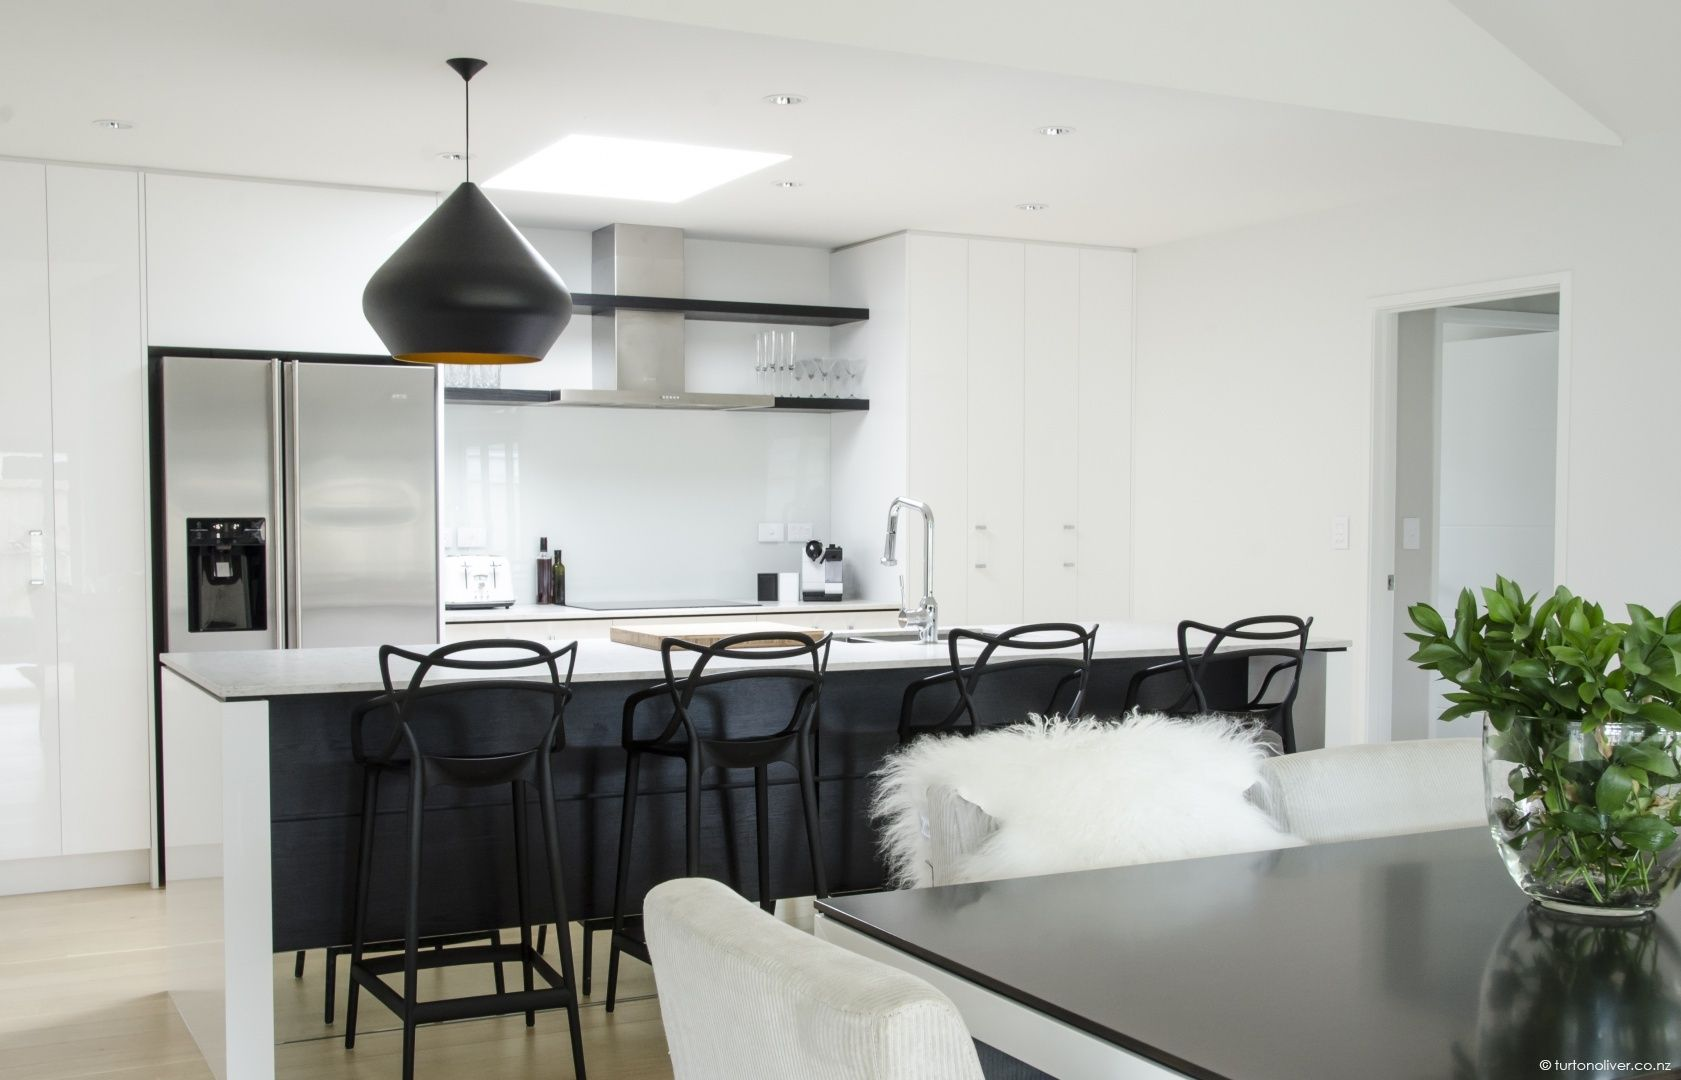 turton oliver interior design hamilton nz residential kitchens